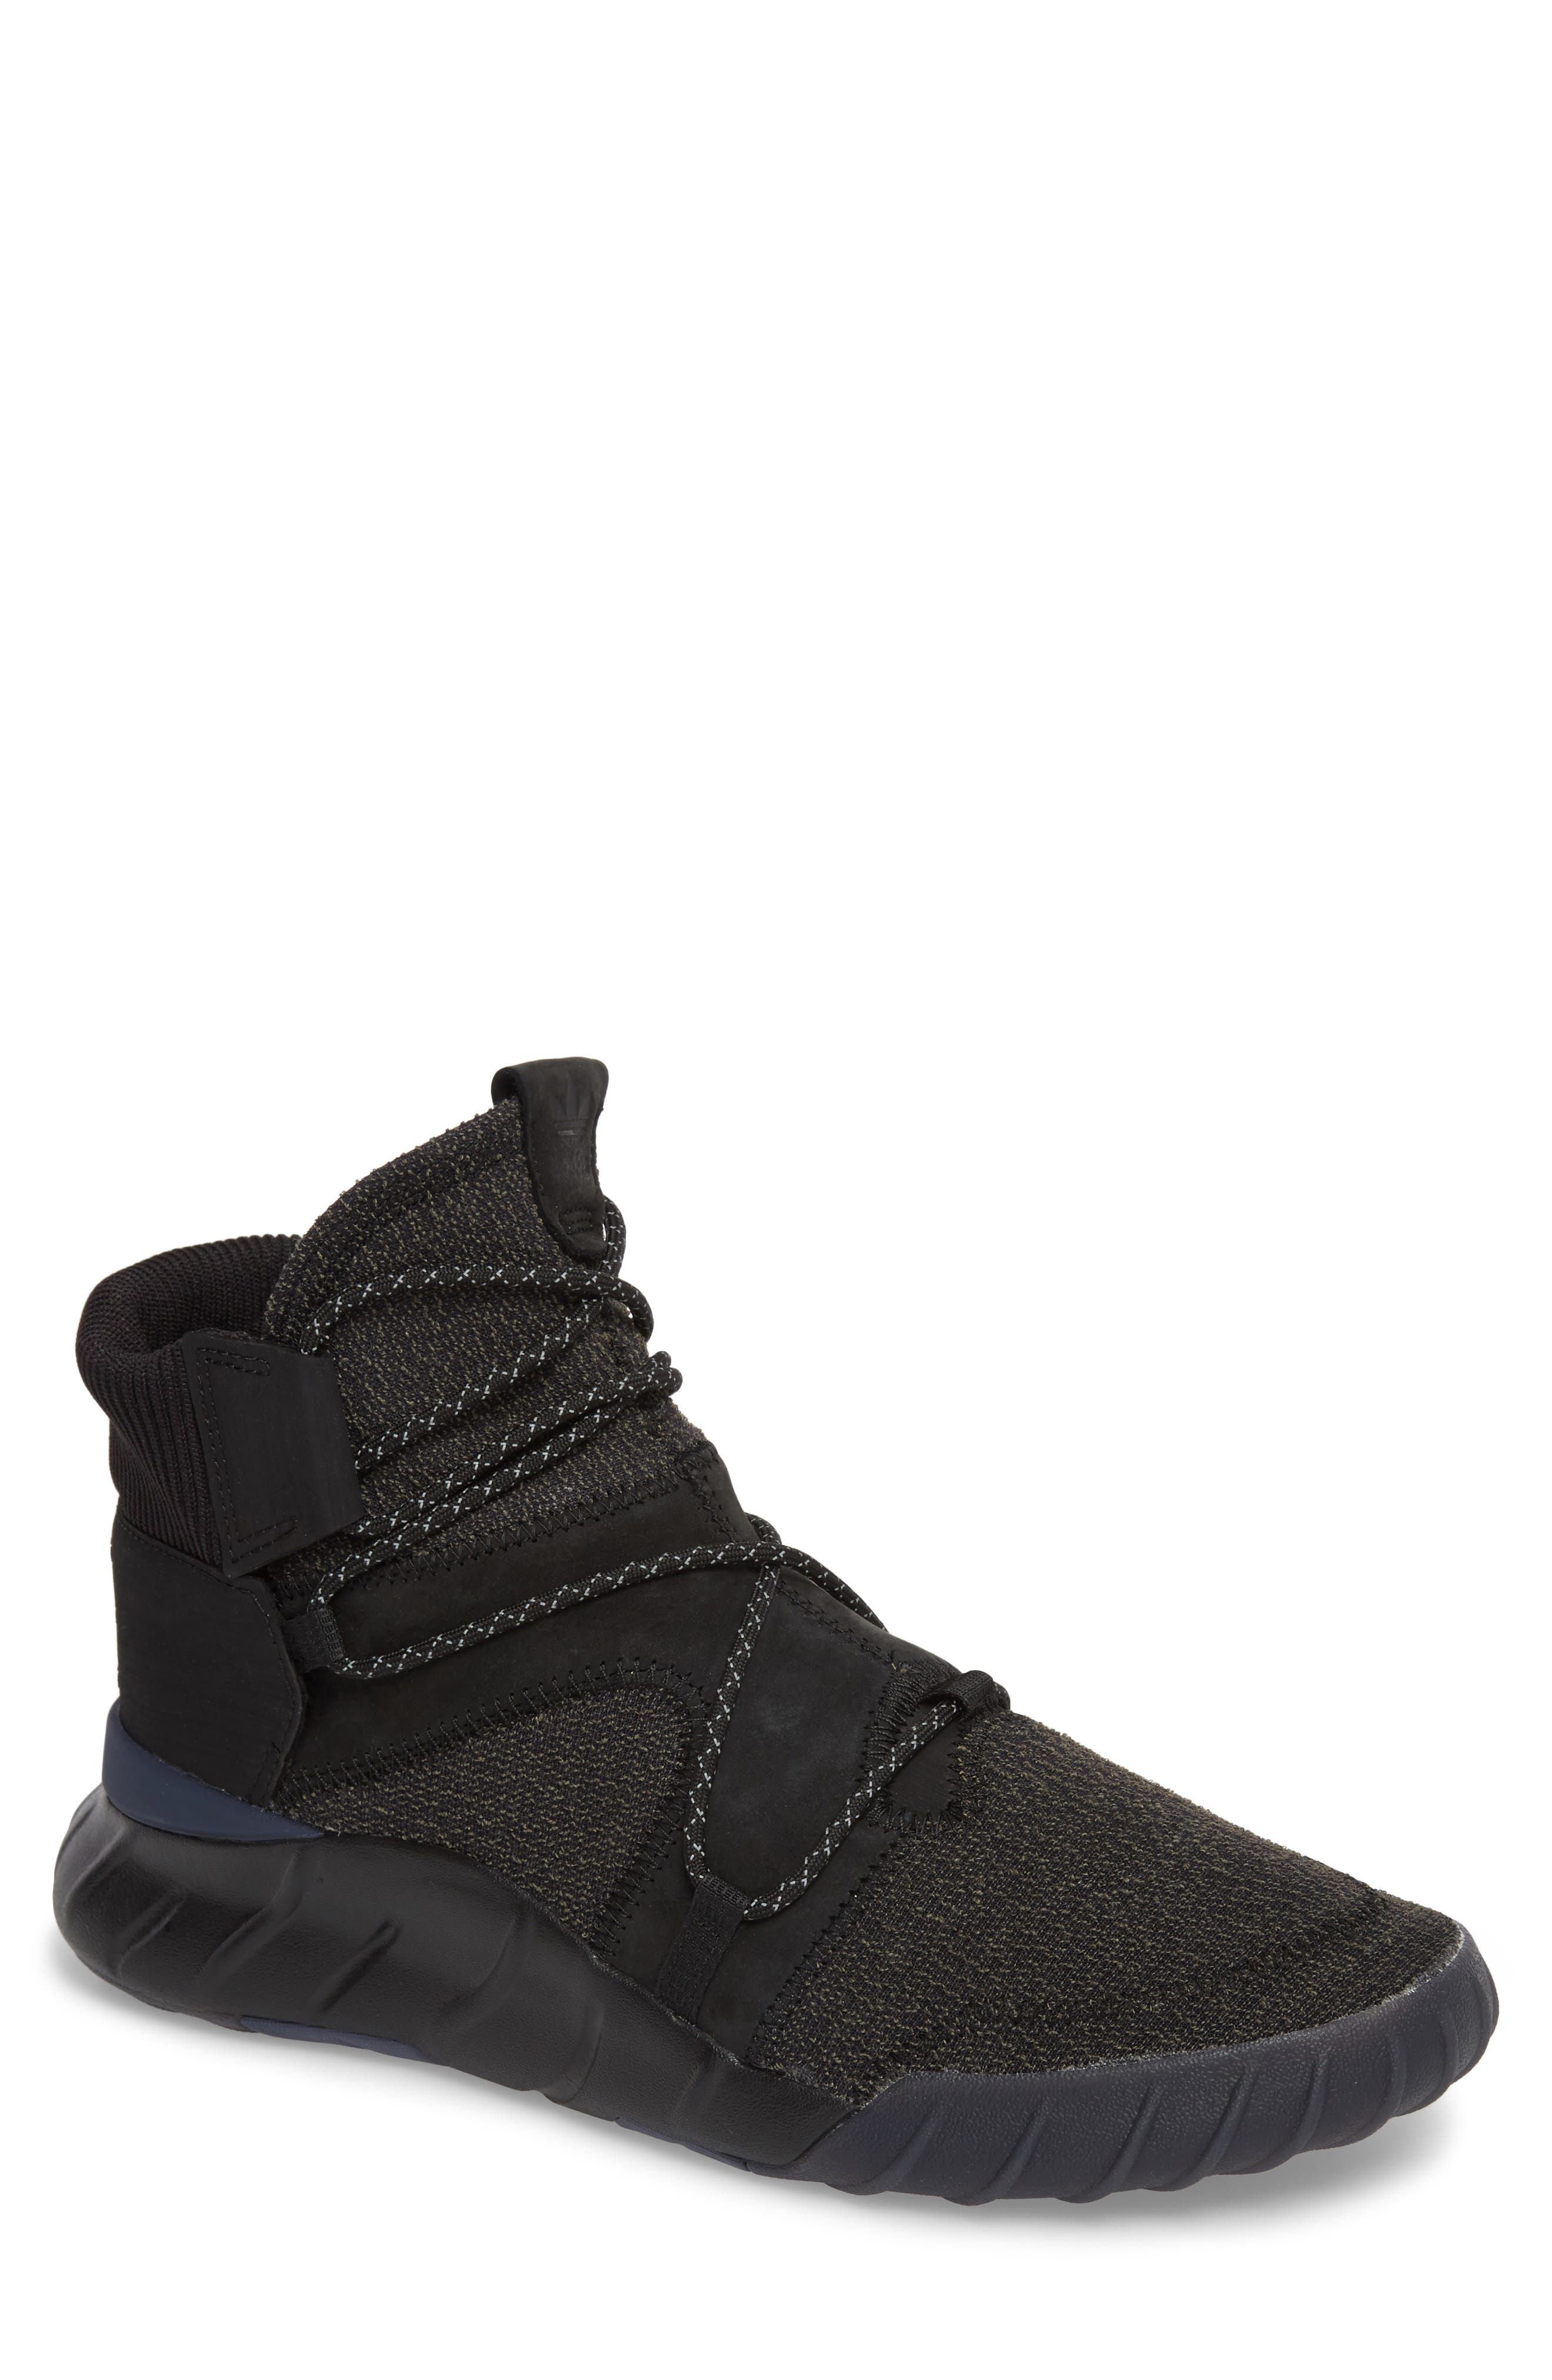 adidas Tubular X 2.0 High Top Sneaker (Men)